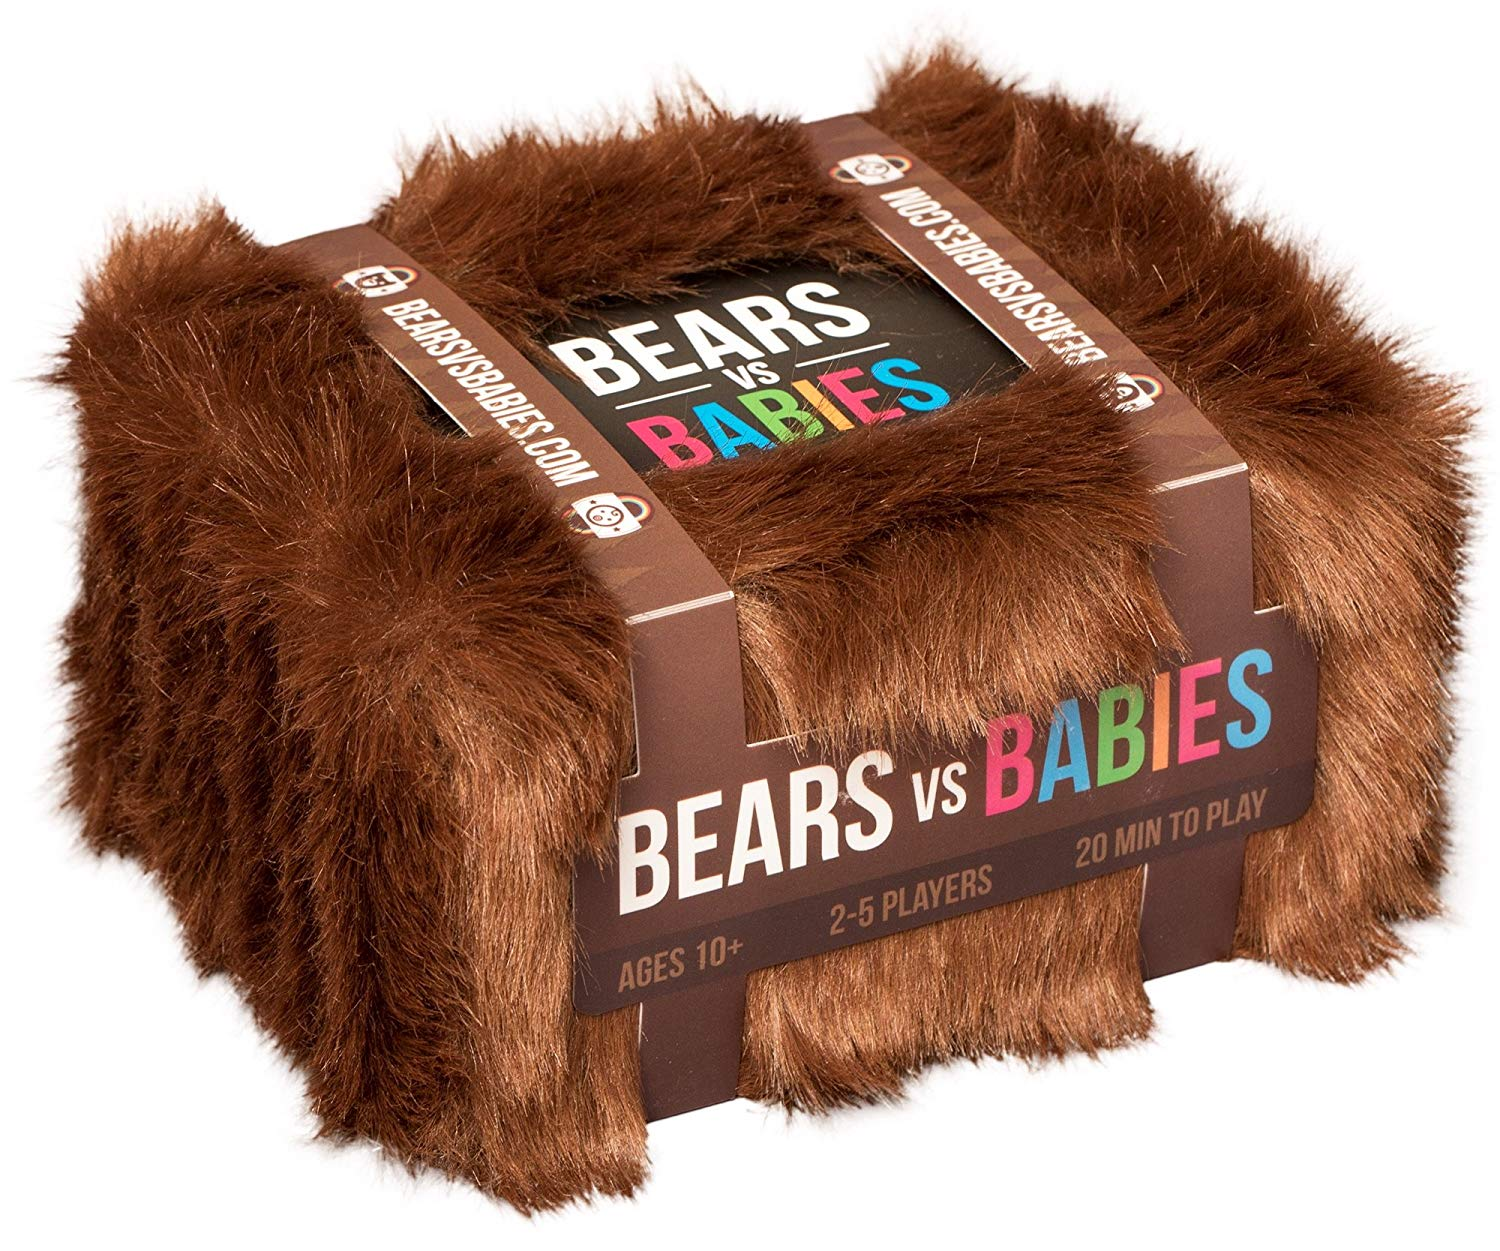 the best card games for families bears vs babies.jpg